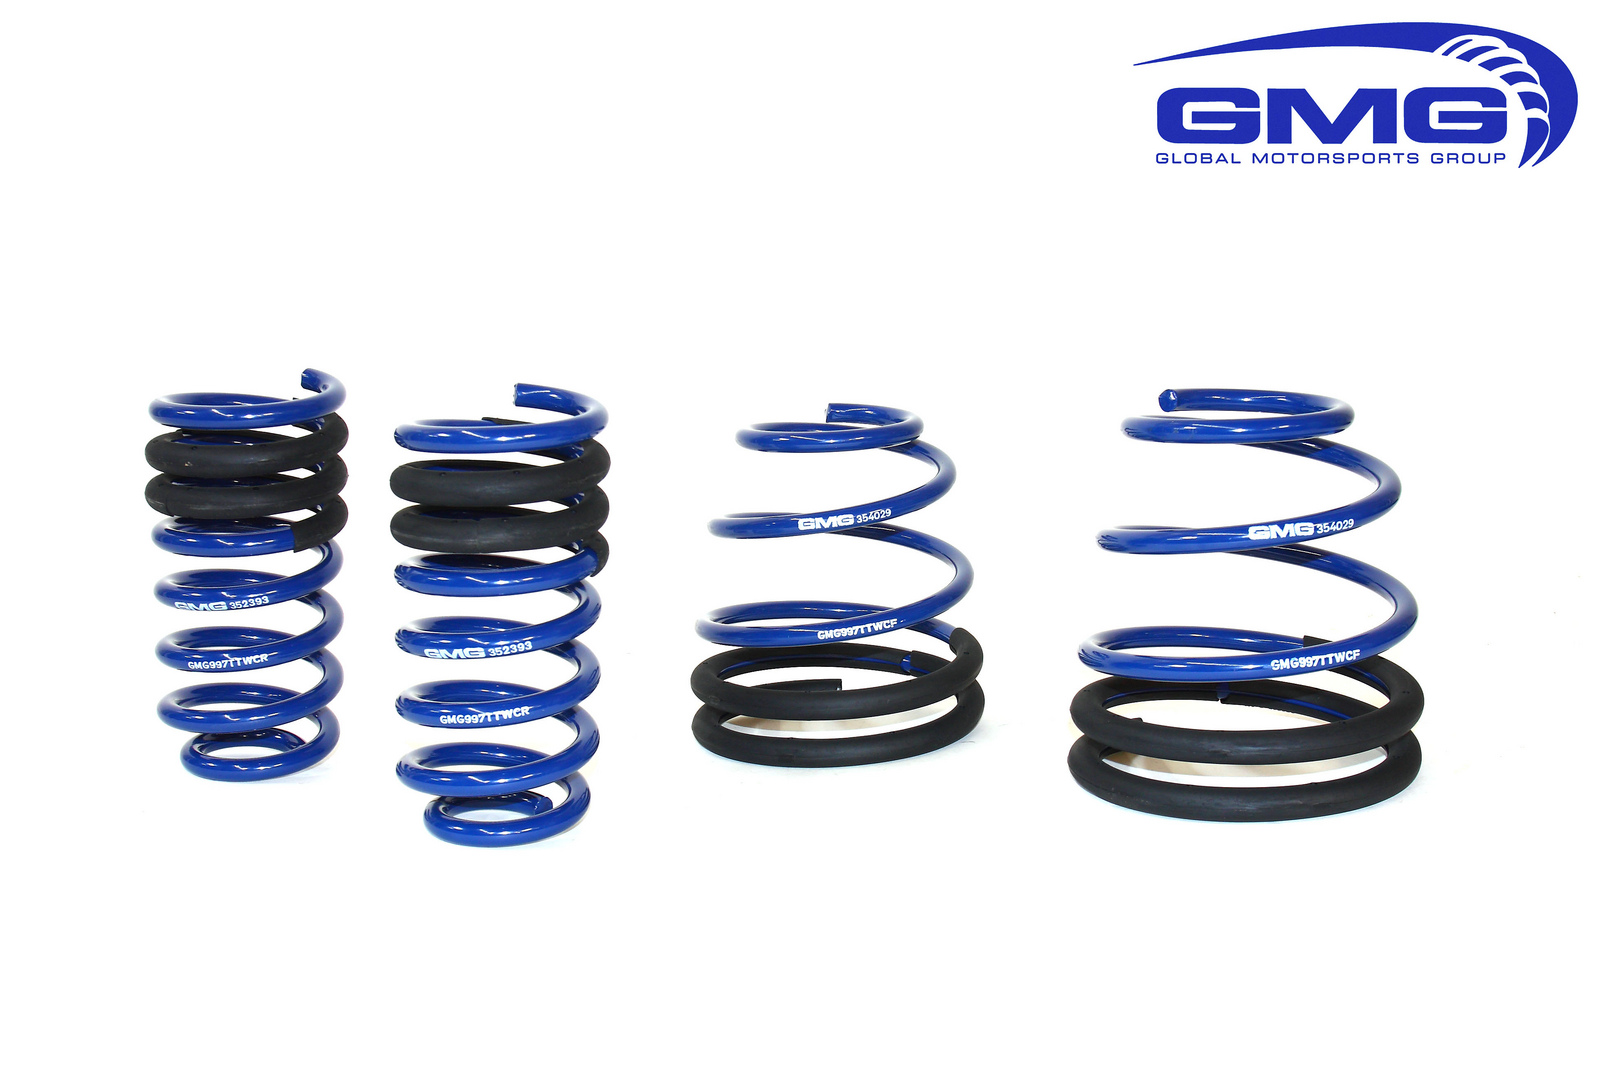 GMG Racing Lowering Springs At ModBargains.com